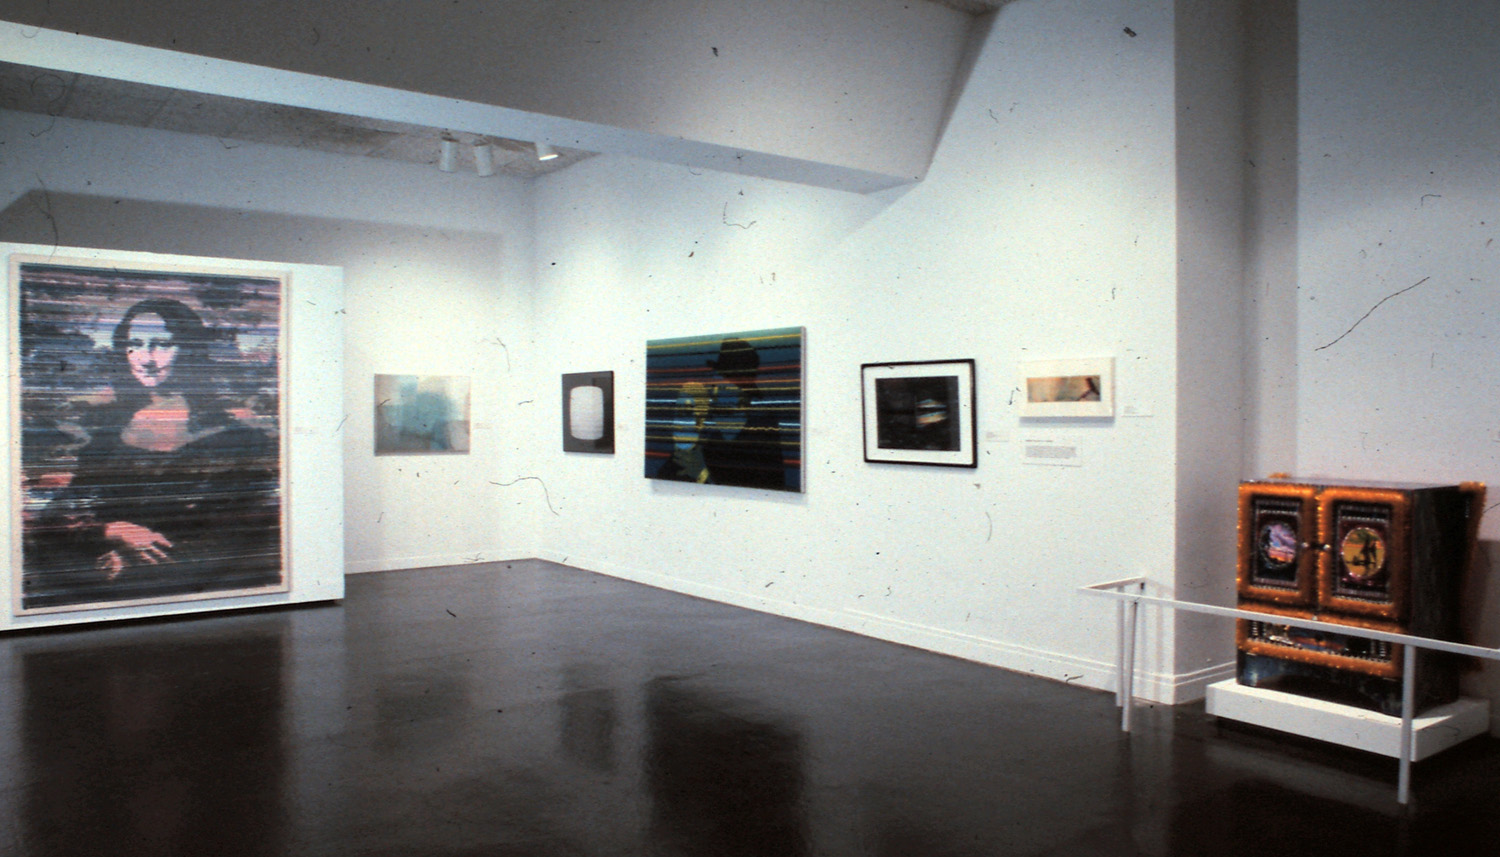 Left to right: Anton Perich, Mona Lisa; Keith Sonnier, Video Still Screen II; Lewis Stein, Untitled (T.V. Light); Ed Paschke, Strangulita; Alastair Noble, Divided Presence; unidentified; Rhonda Zwillinger, Turned On.